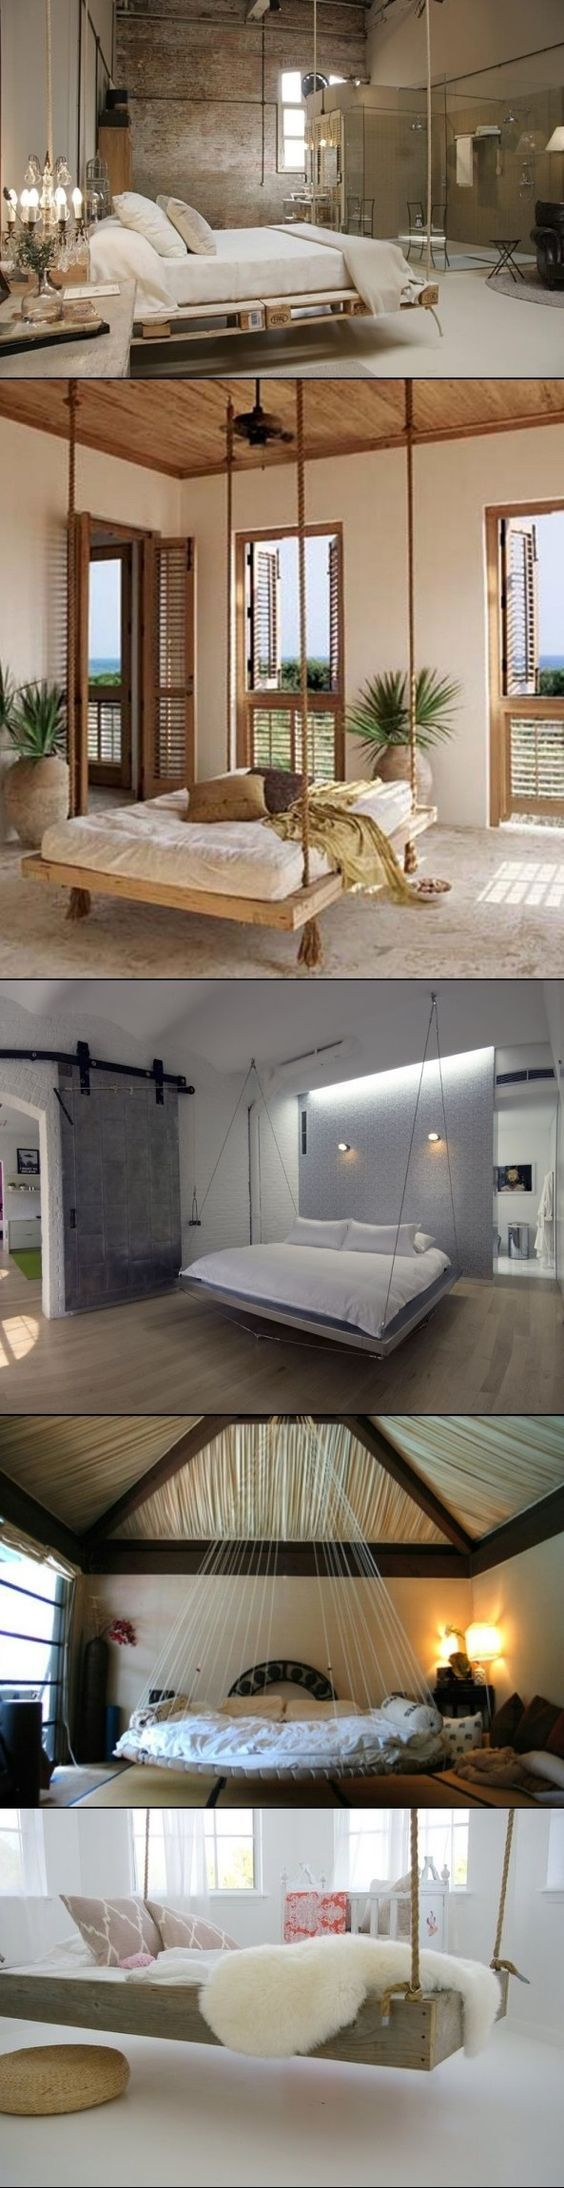 DIY hanging bedroom beds. __ What is WUKAR? (See My Profile).: